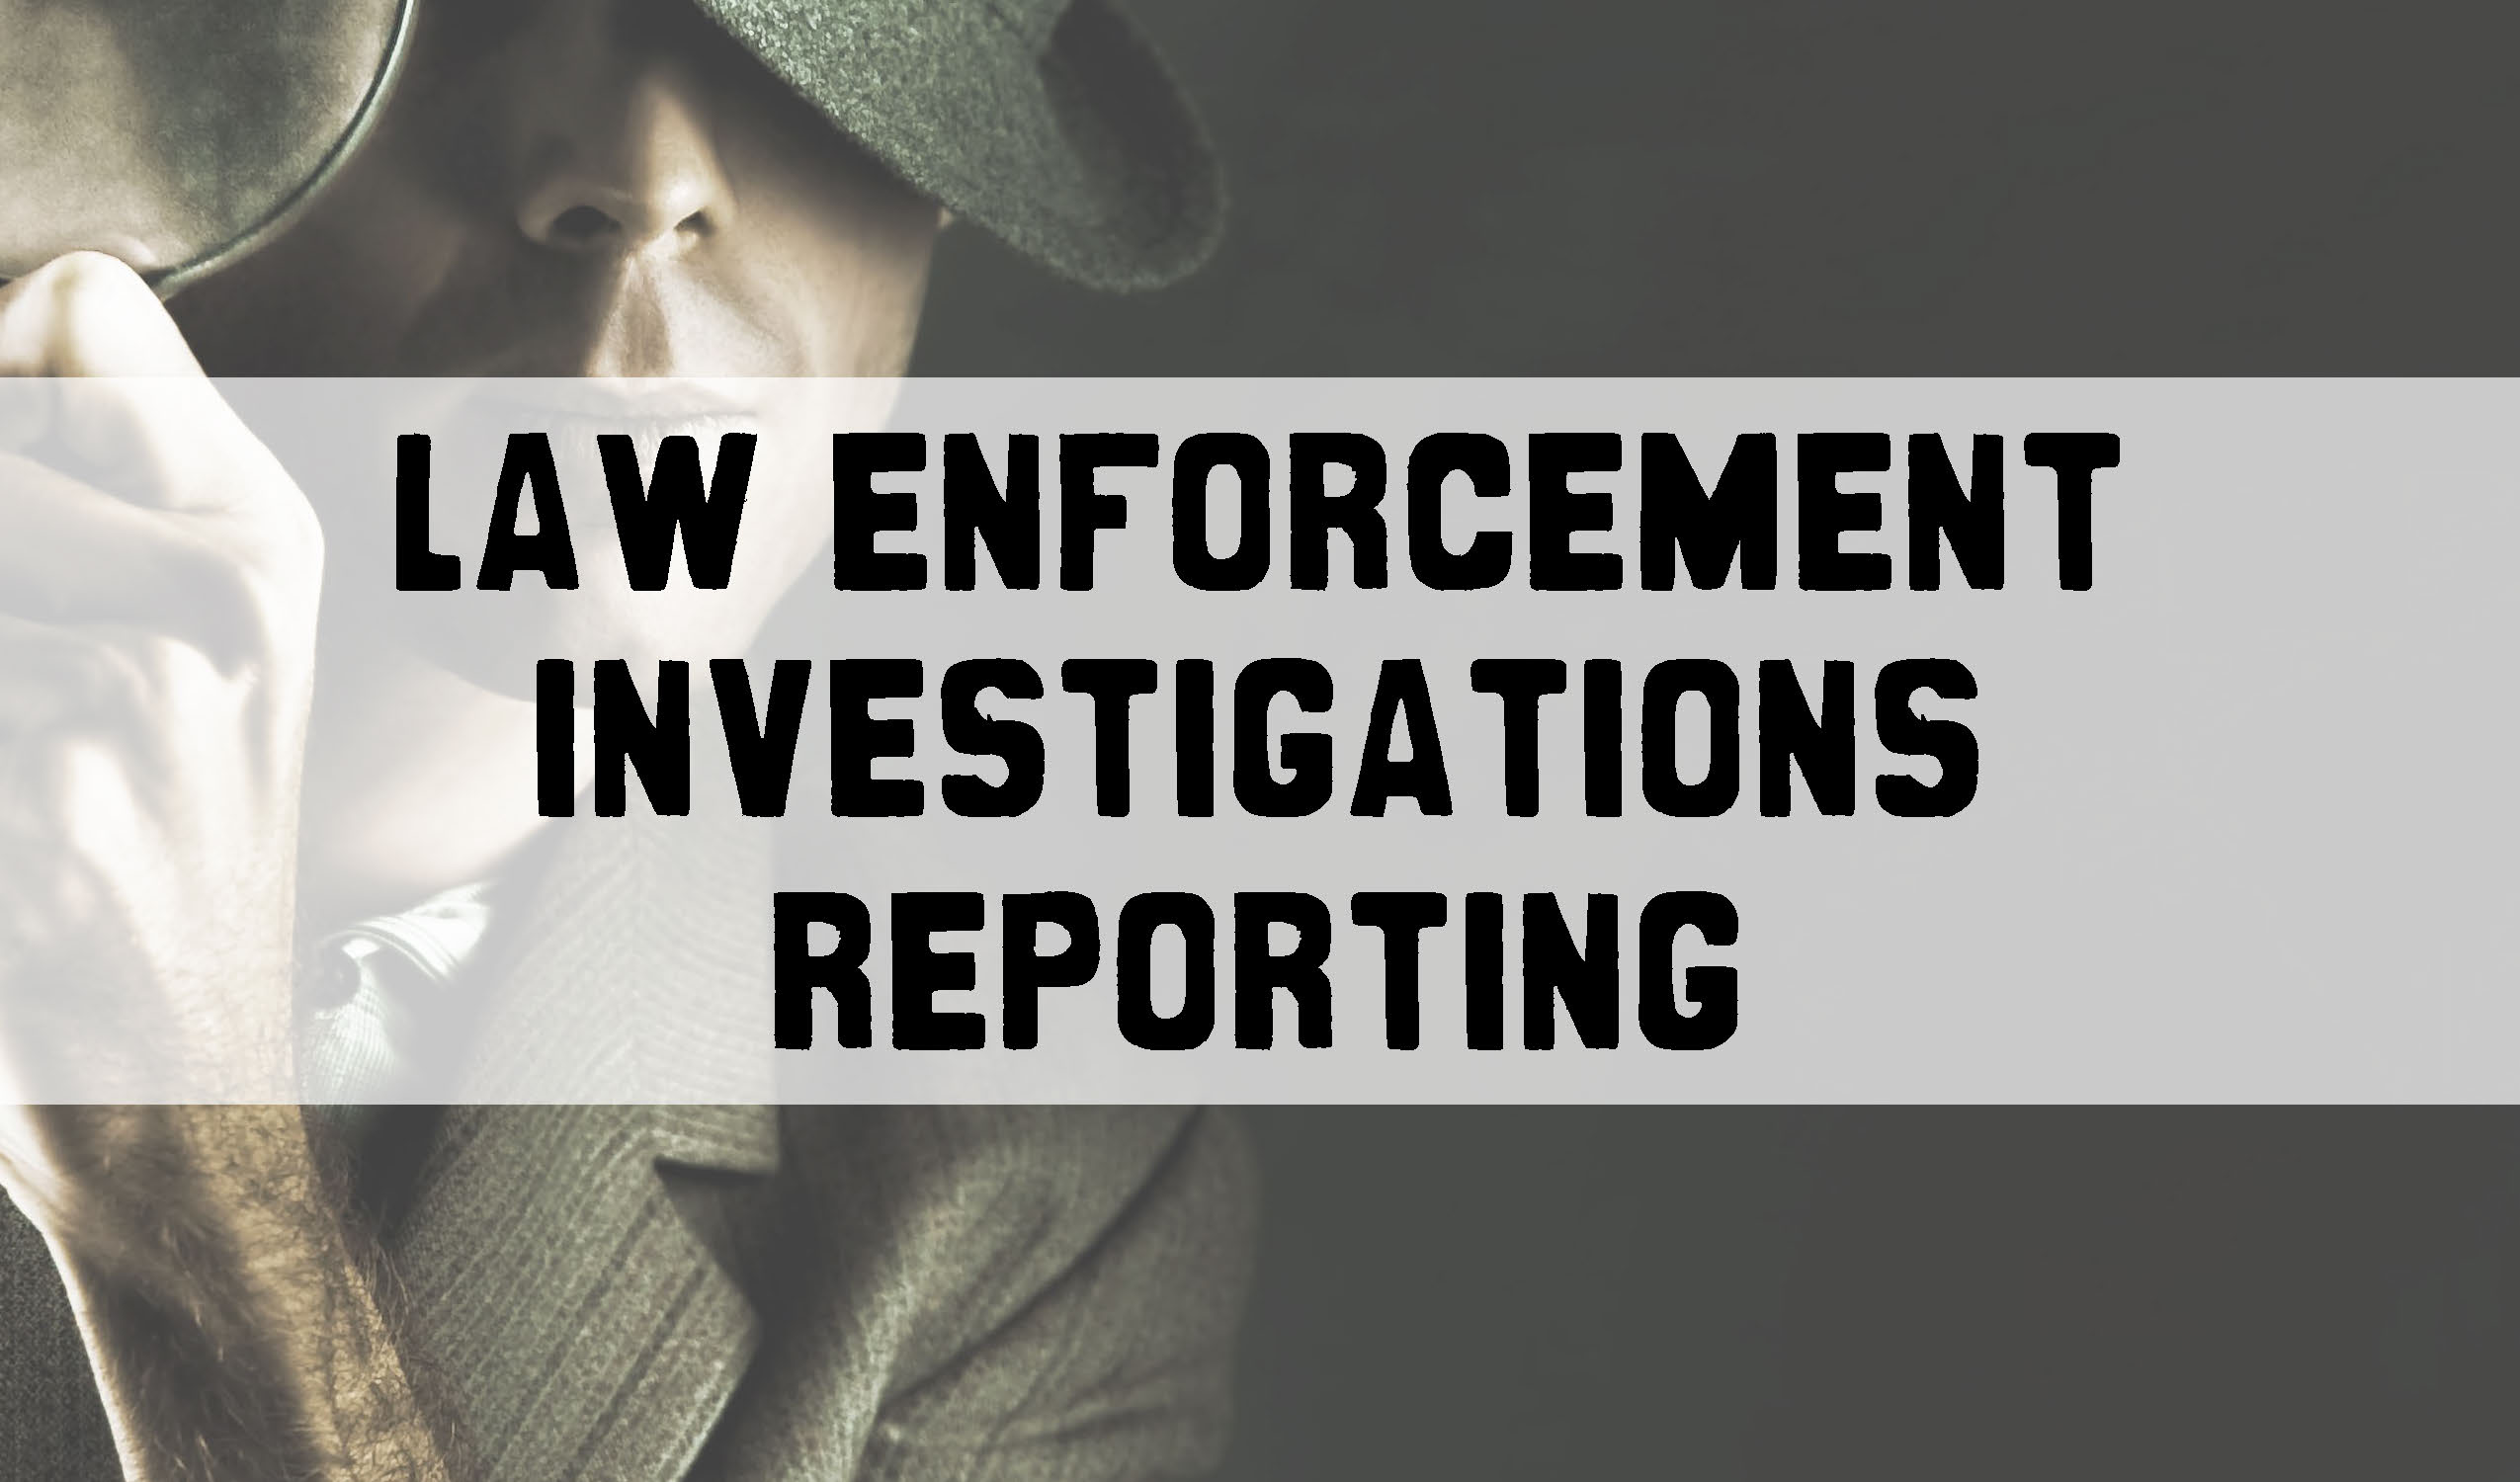 Law Enforcement Investigations Reporting